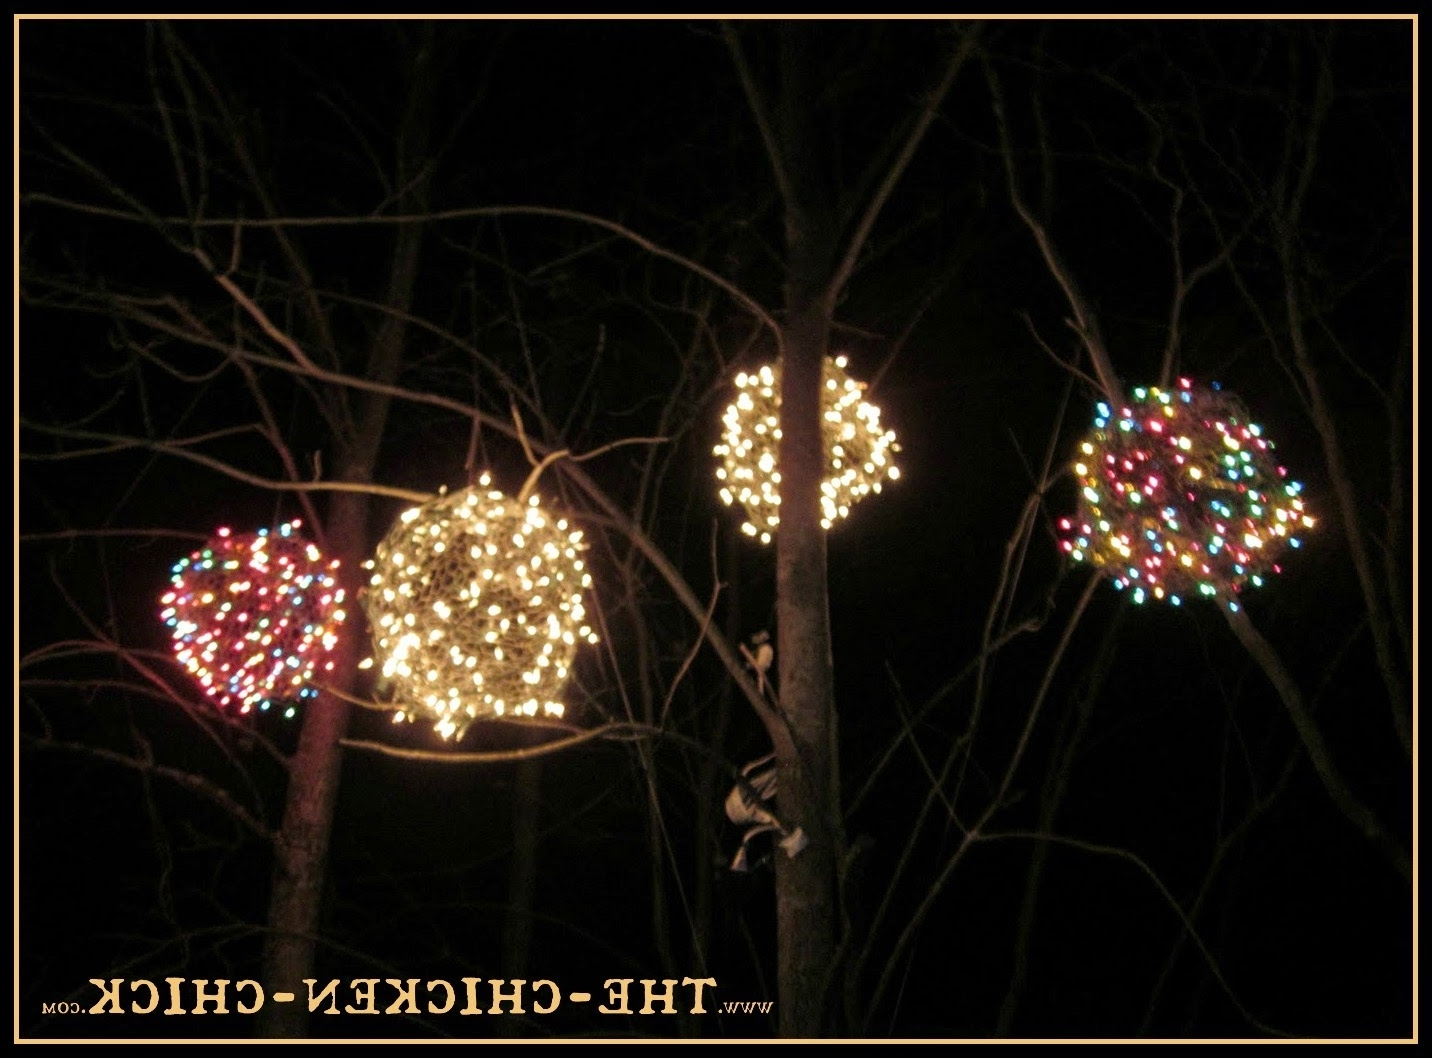 Outdoor Hanging Sphere Lights Regarding Most Up To Date Diy : Outdoor Christmas Ball Lights Outdoor Christmas Sphere Lights (View 11 of 20)